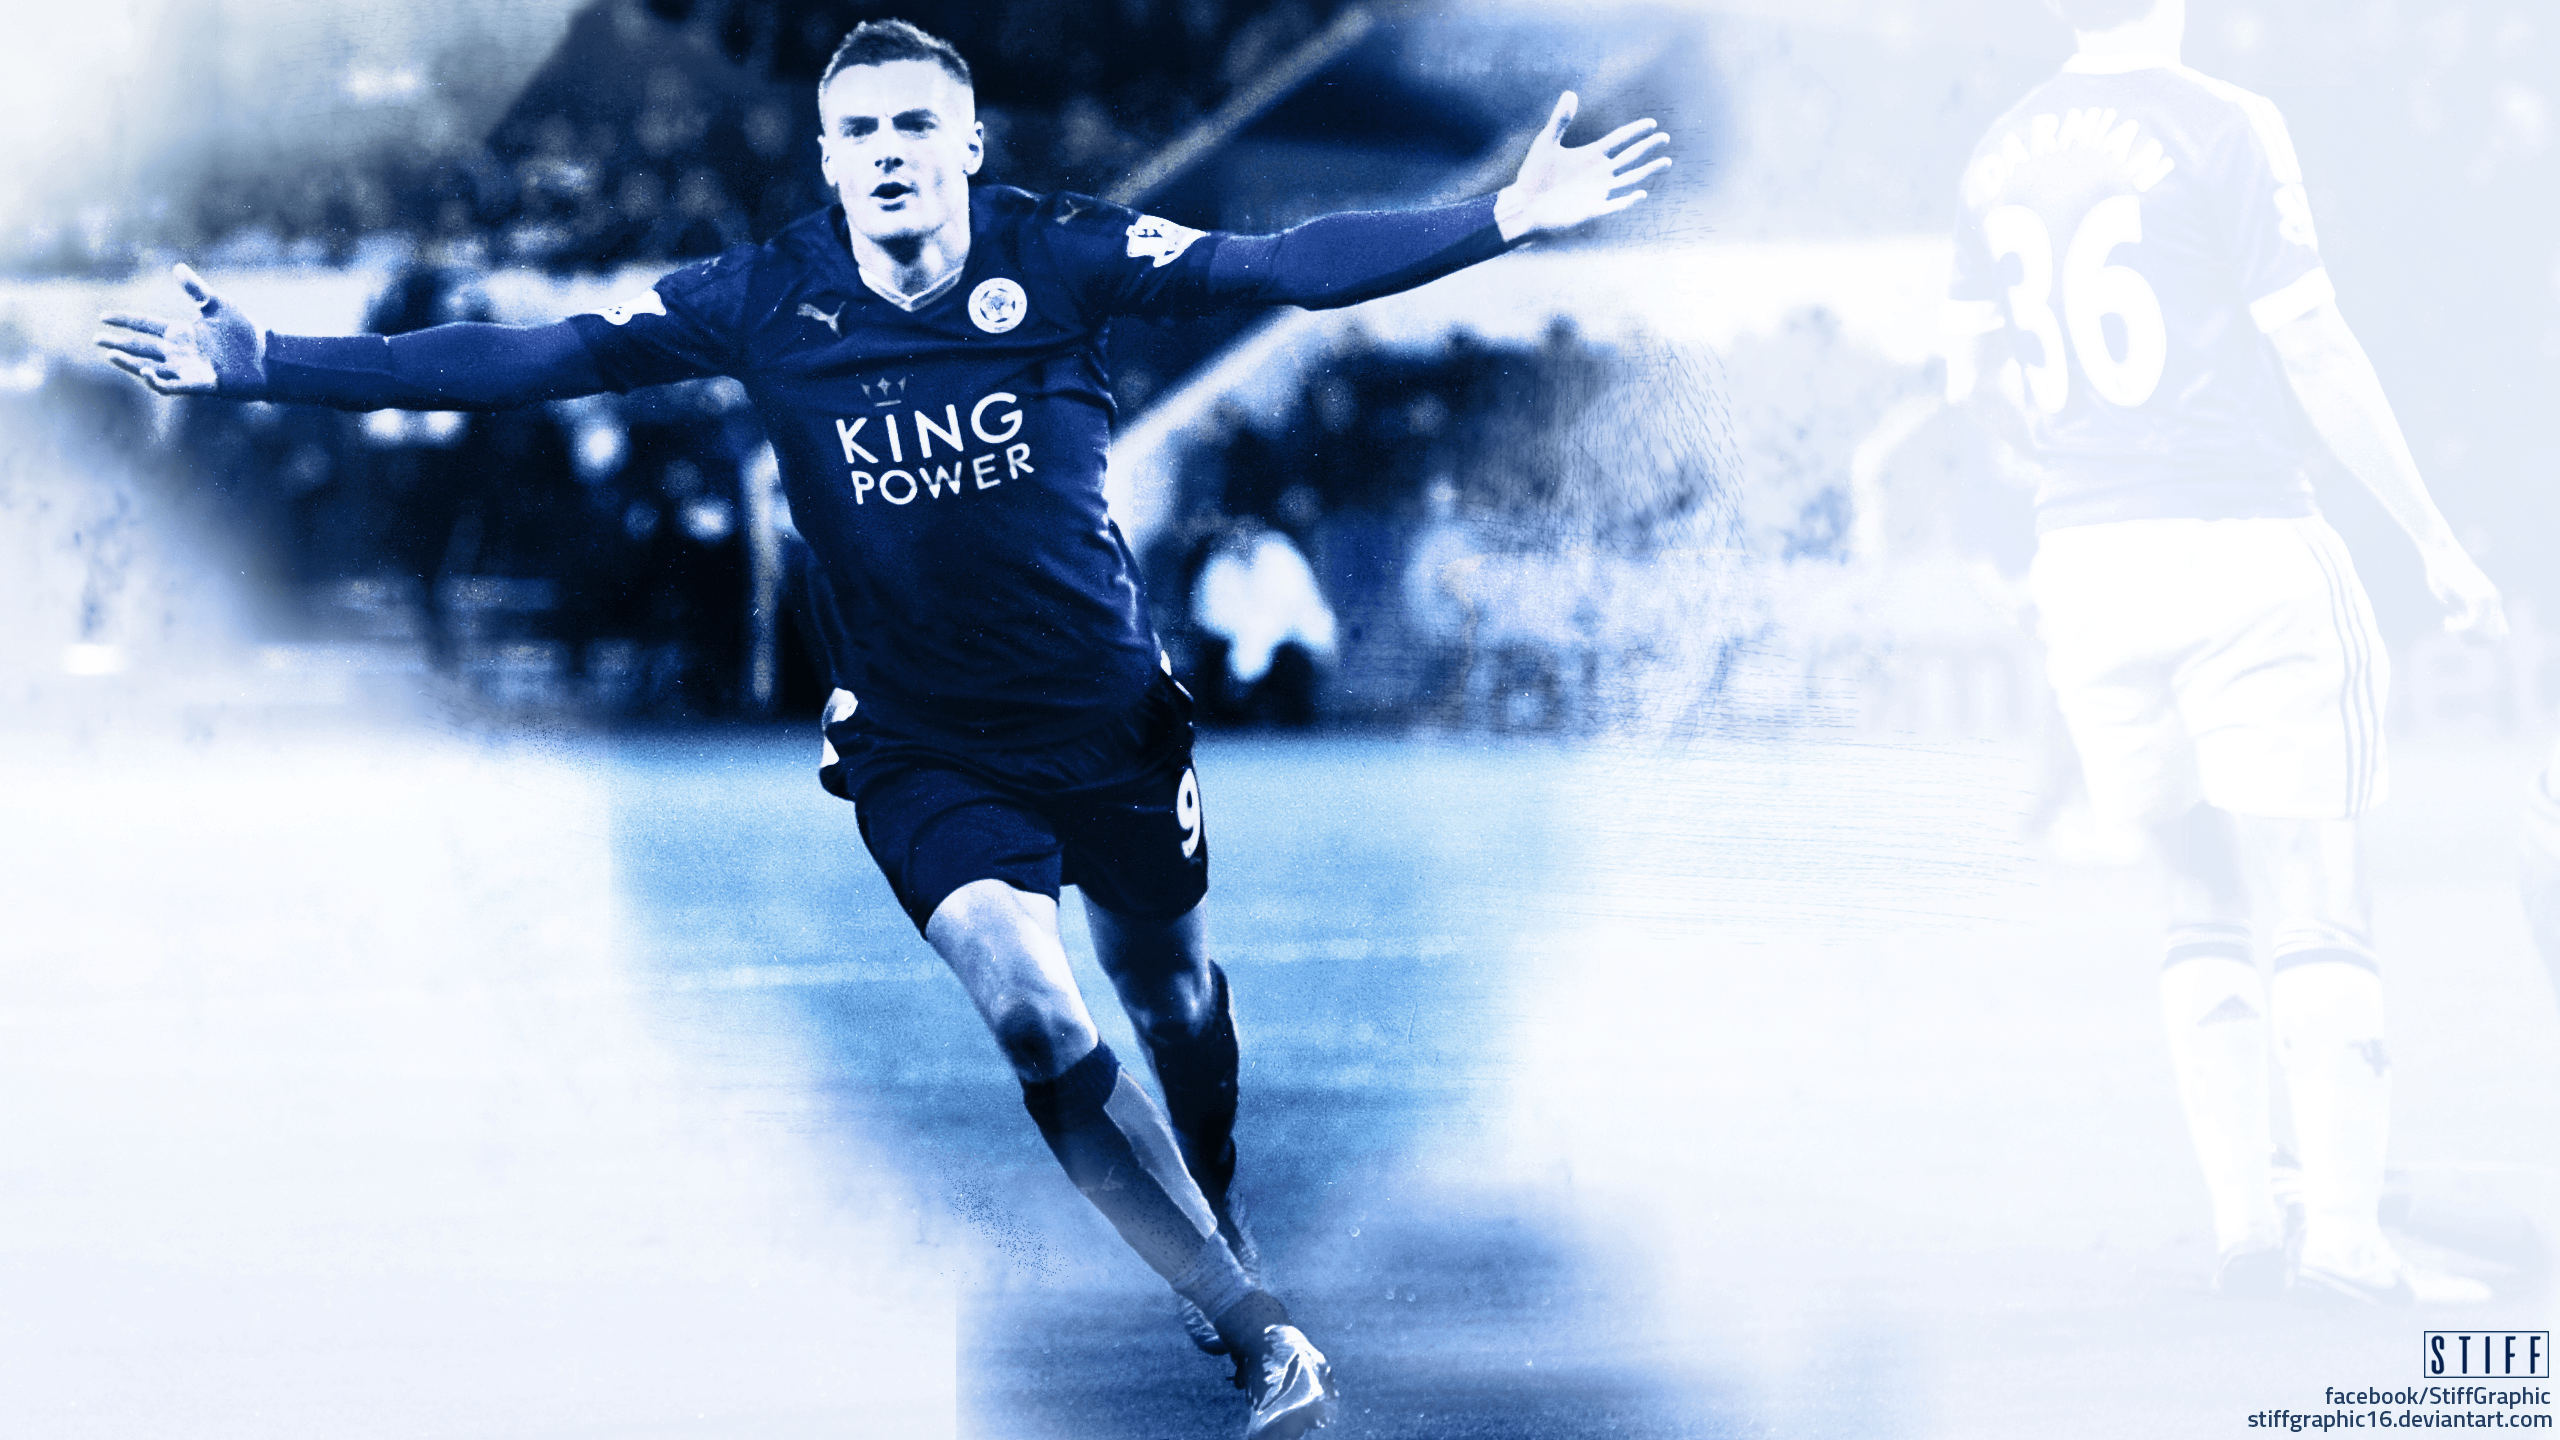 Jamie Vardy Effect - Wallpaper by stiffgraphic16 on DeviantArt